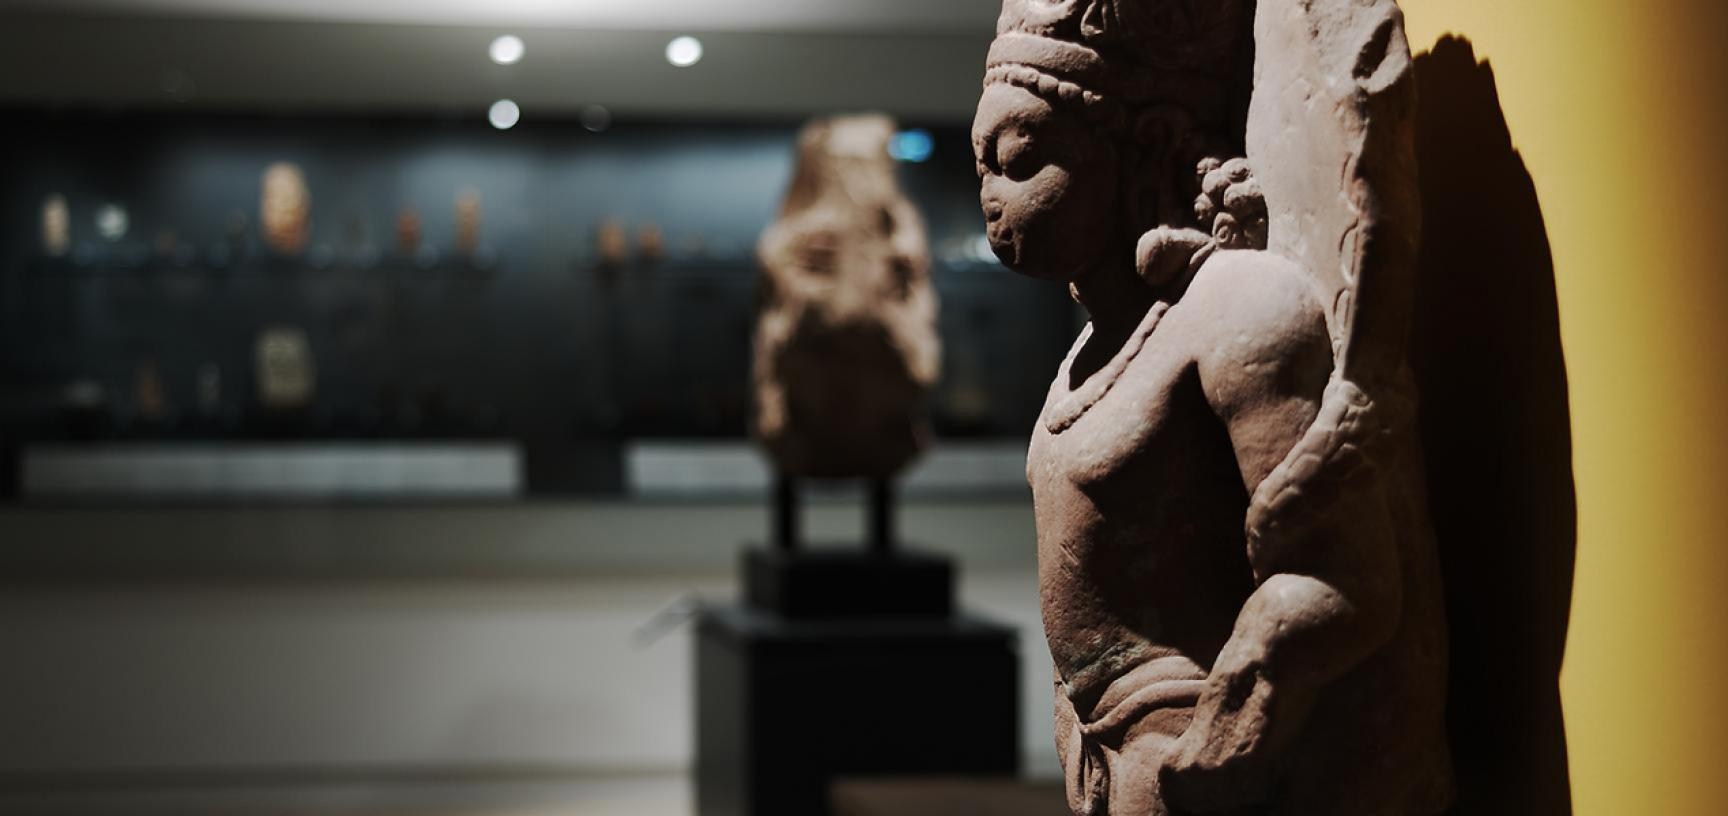 The India Gallery at the Ashmolean Museum